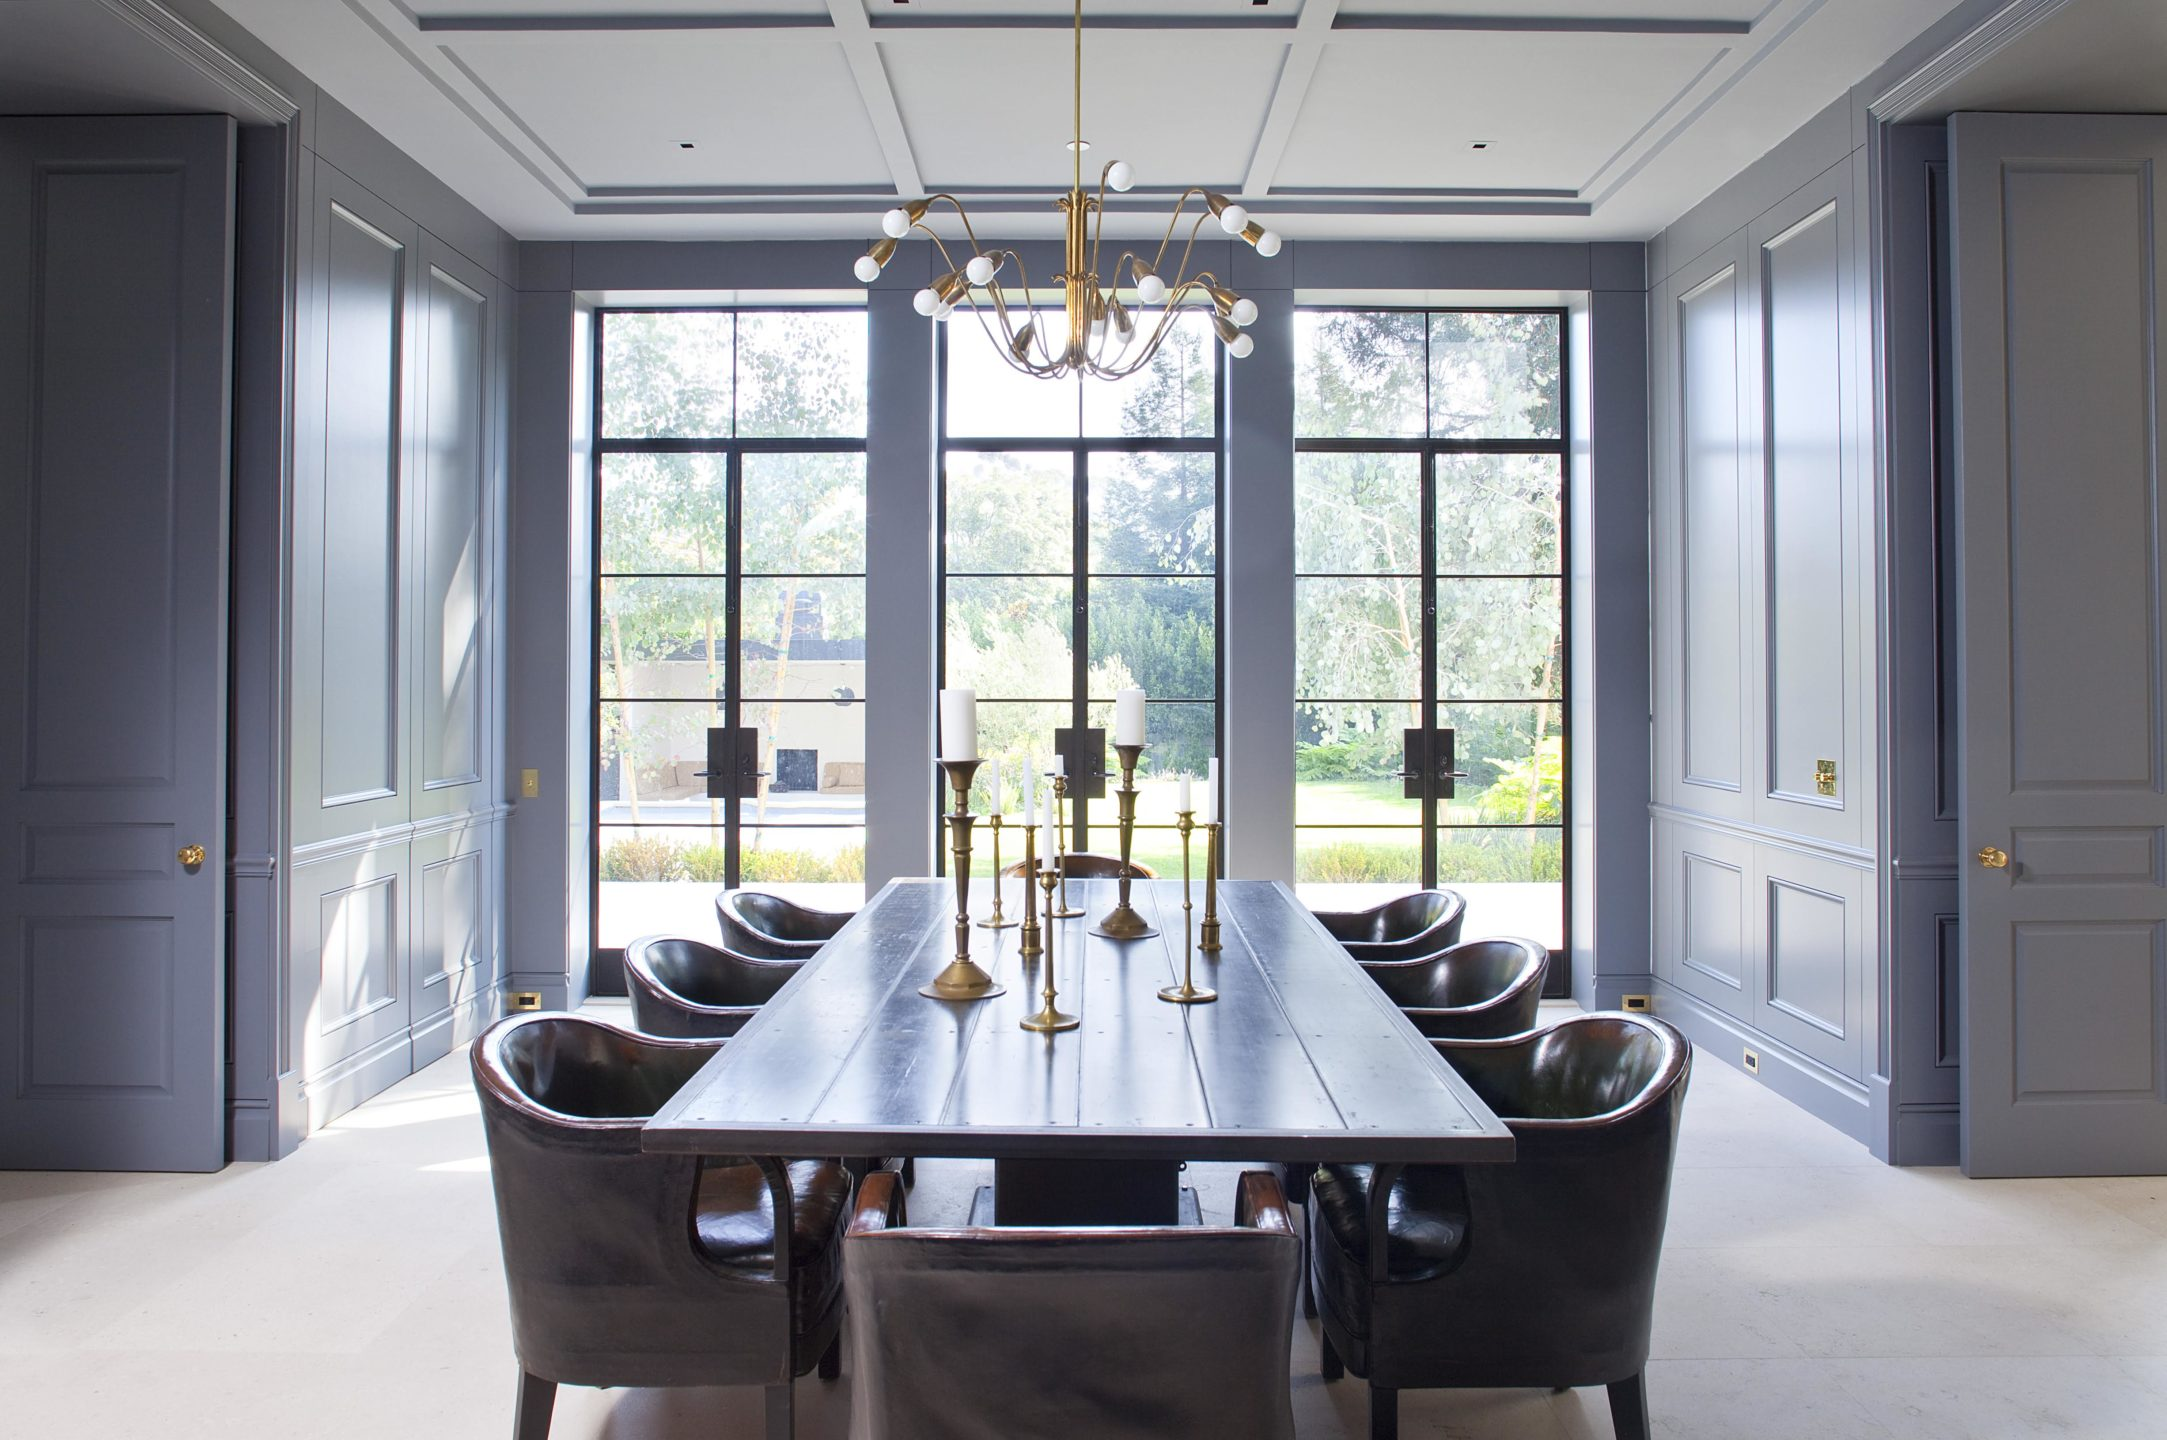 studio-william-hefner_Rustic_Canyon__Greentree__DR_dining_room_01__wide__(JRS)